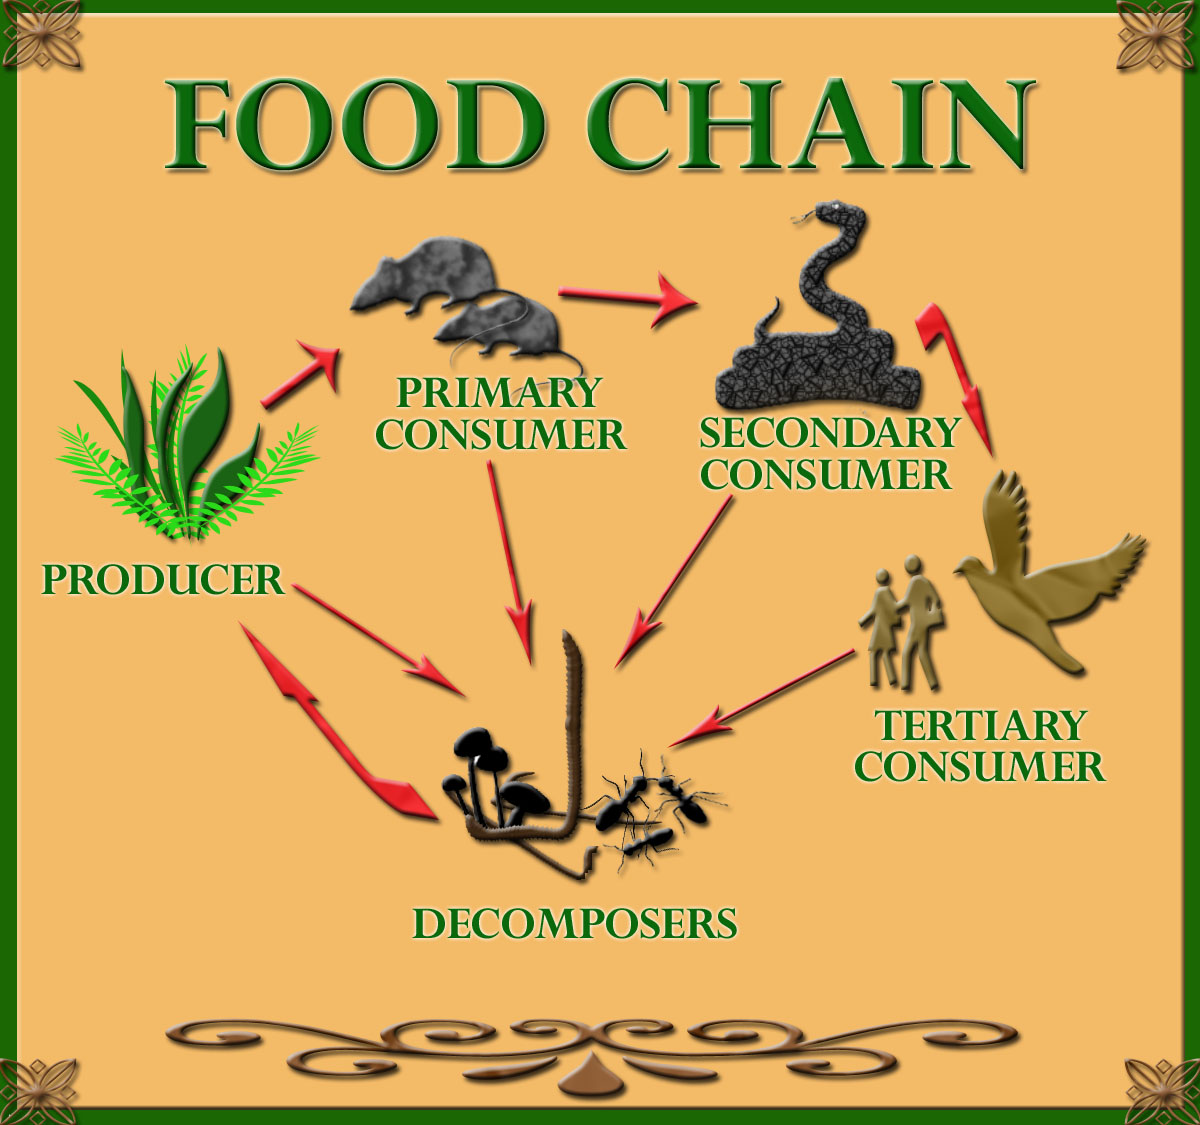 Three types of consumers are within the food chain; Primary consumers, Secondary consumers, and Tertiary consumers.